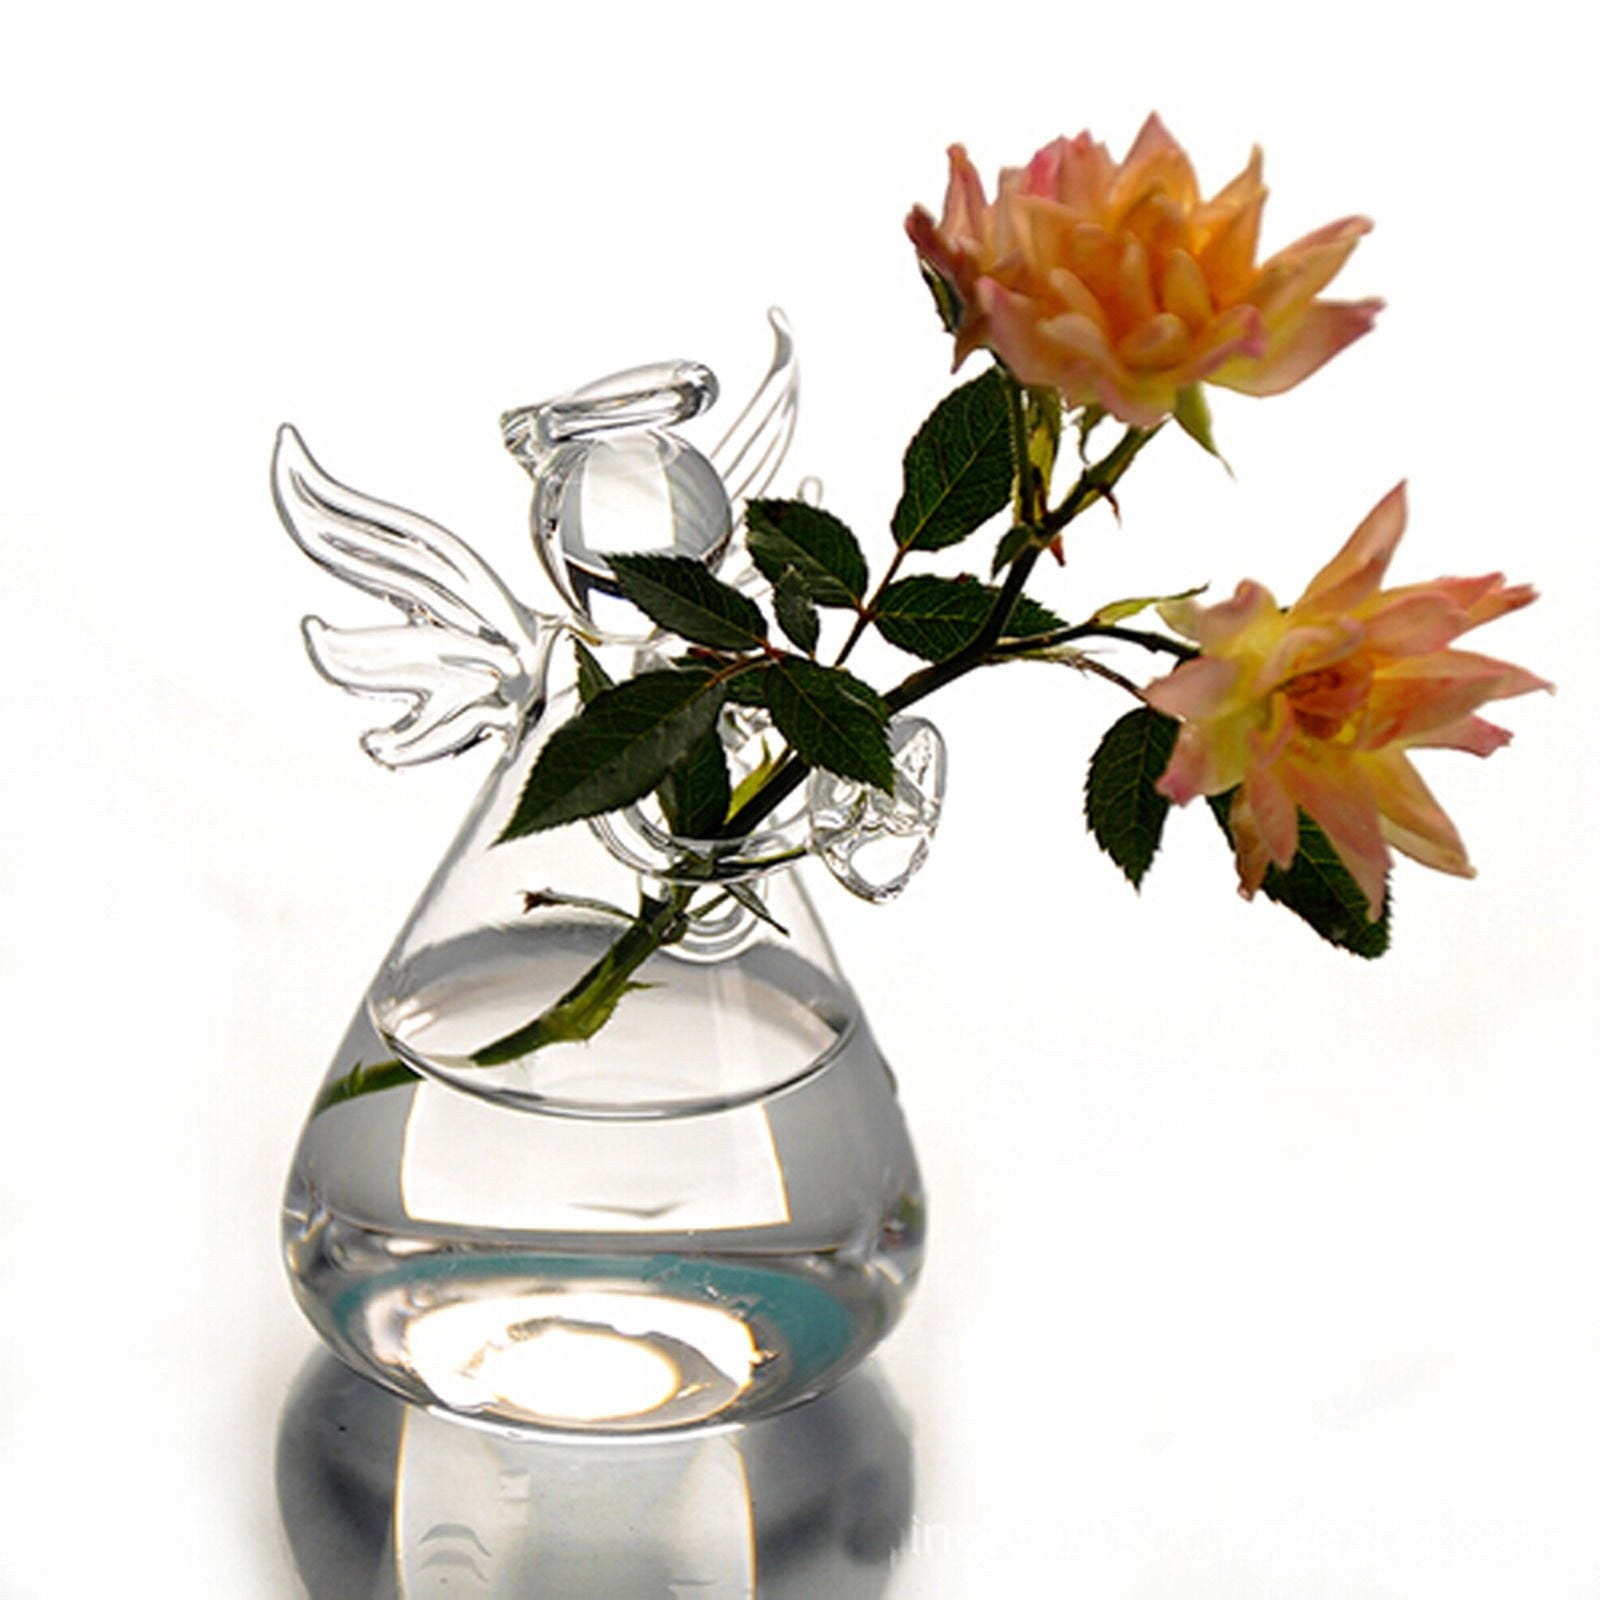 Clear Angel Glass Hanging Vase Bottle Terrarium Hydroponic Container Plant Pot DIY Home Garden Decor 6.5cm*8.5cm